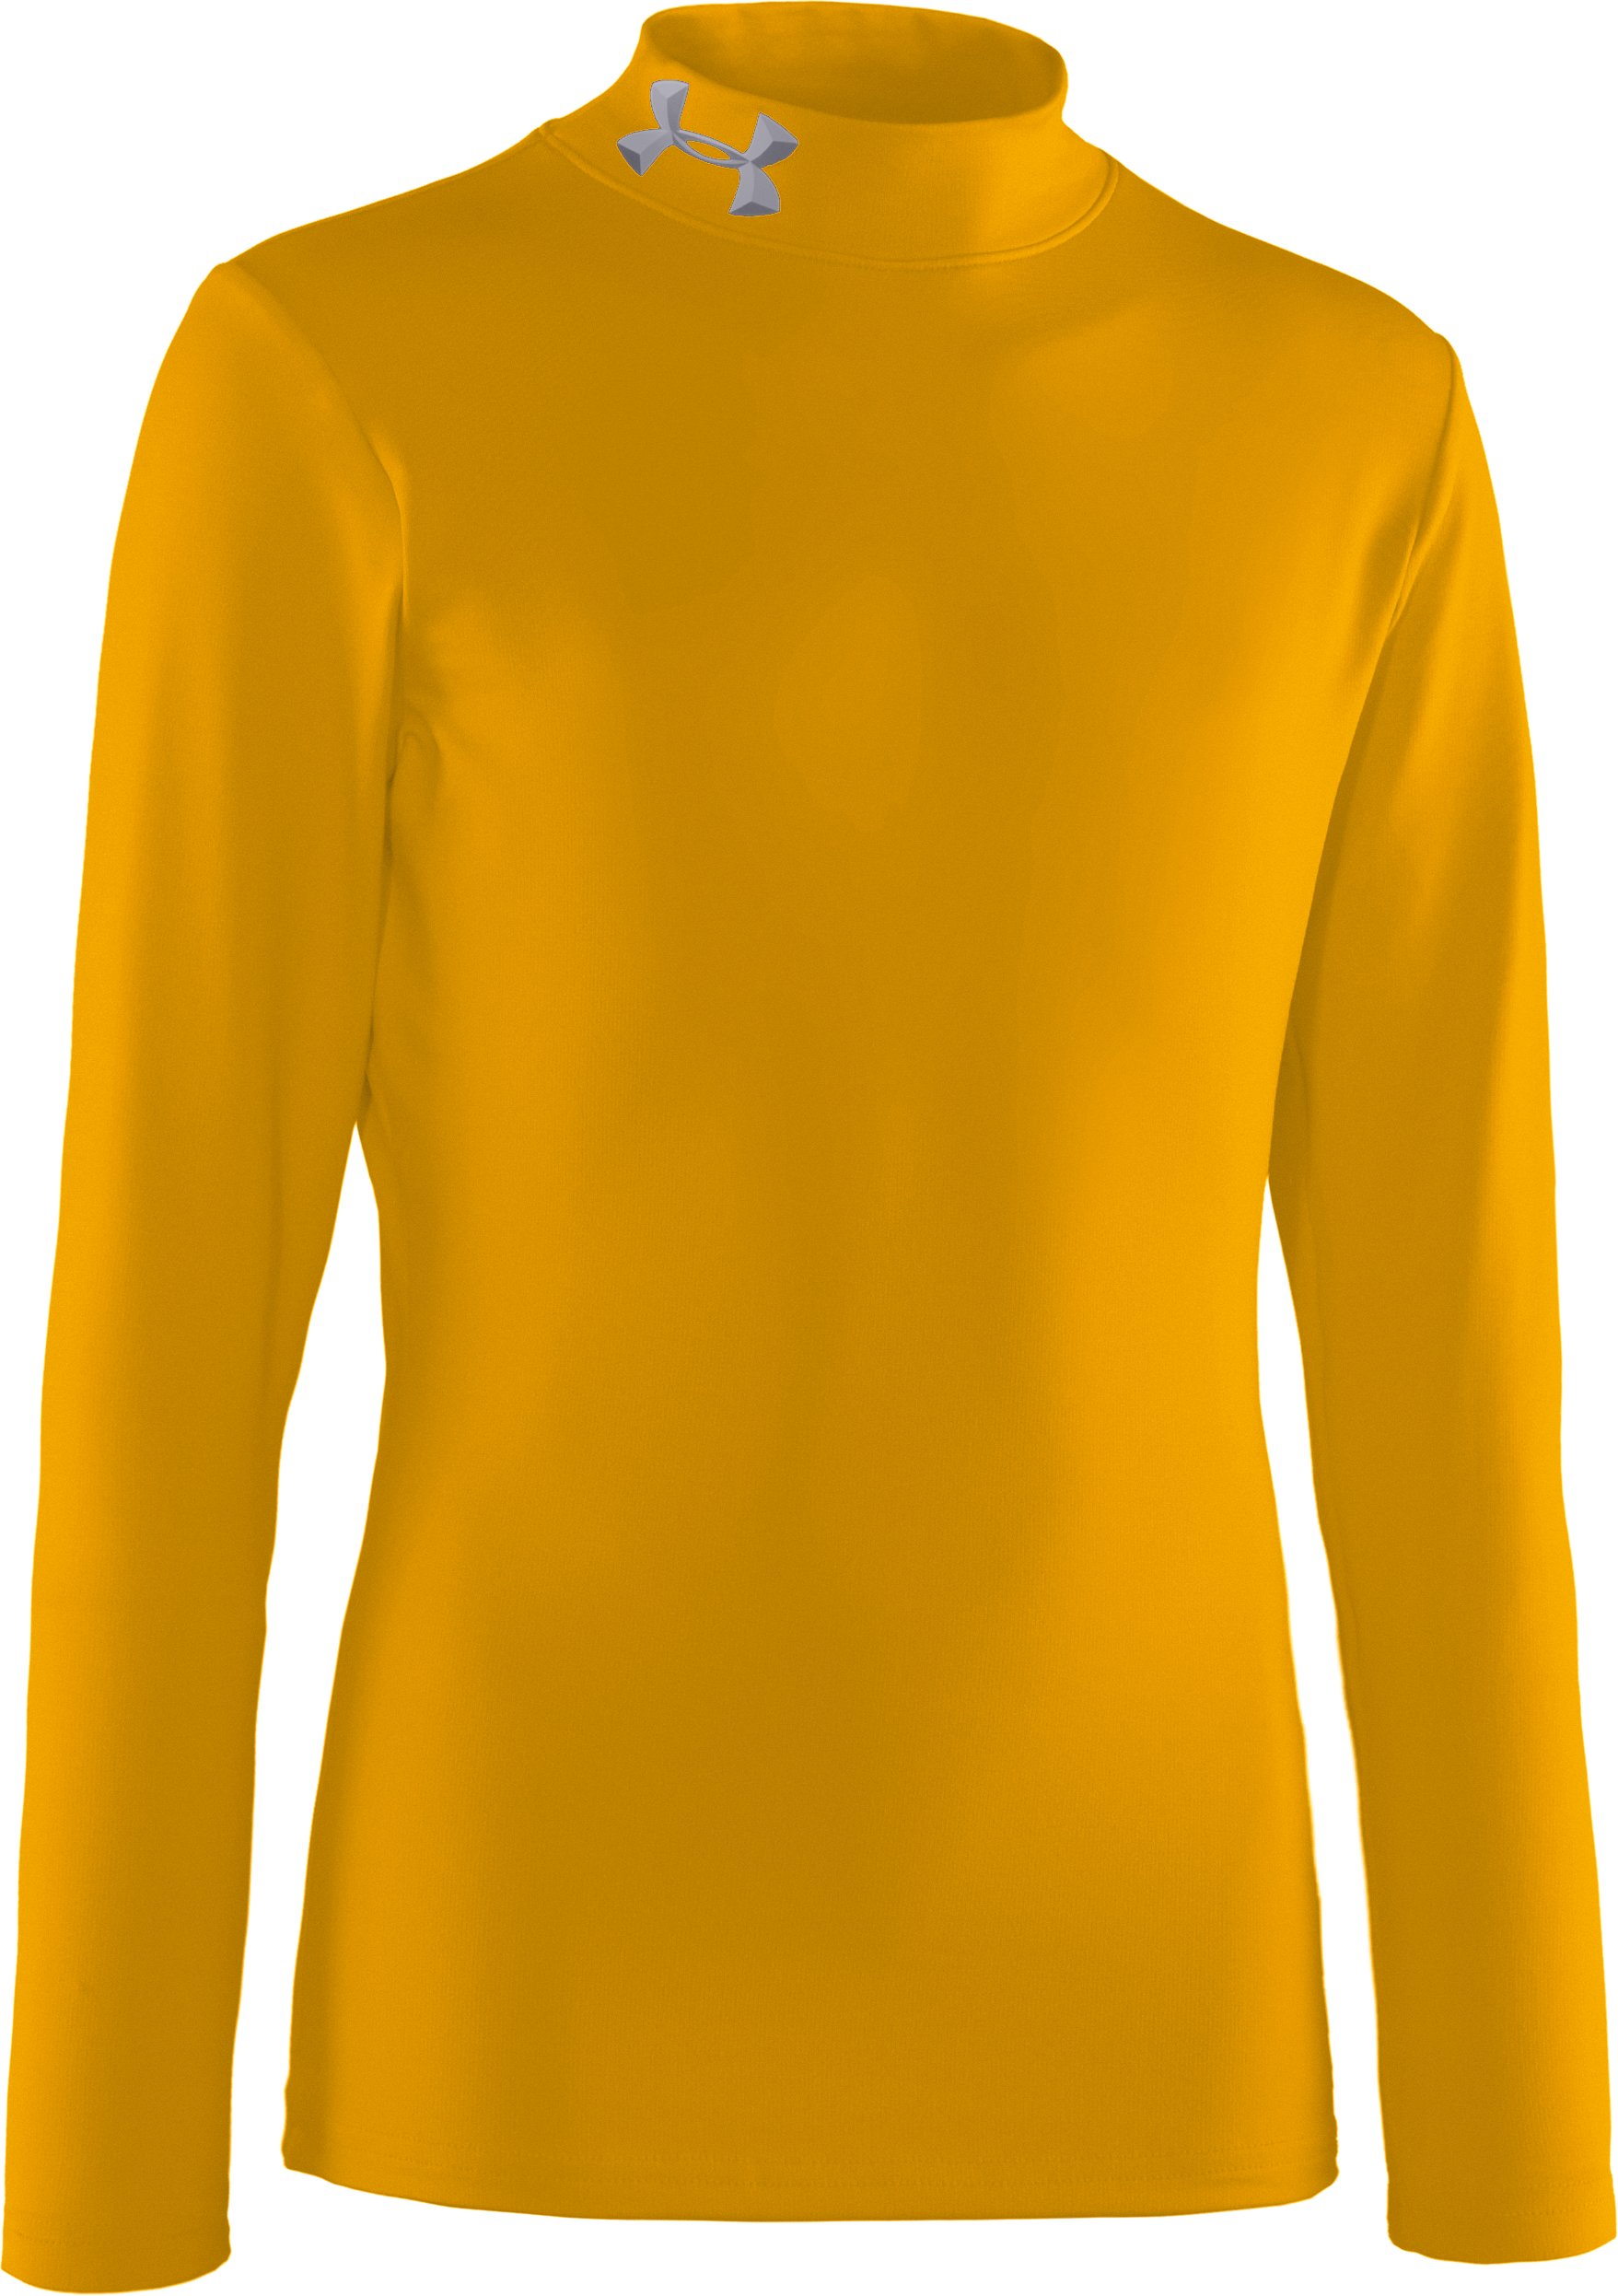 Boys' ColdGear® Evo Fitted Baselayer Mock, Steeltown Gold